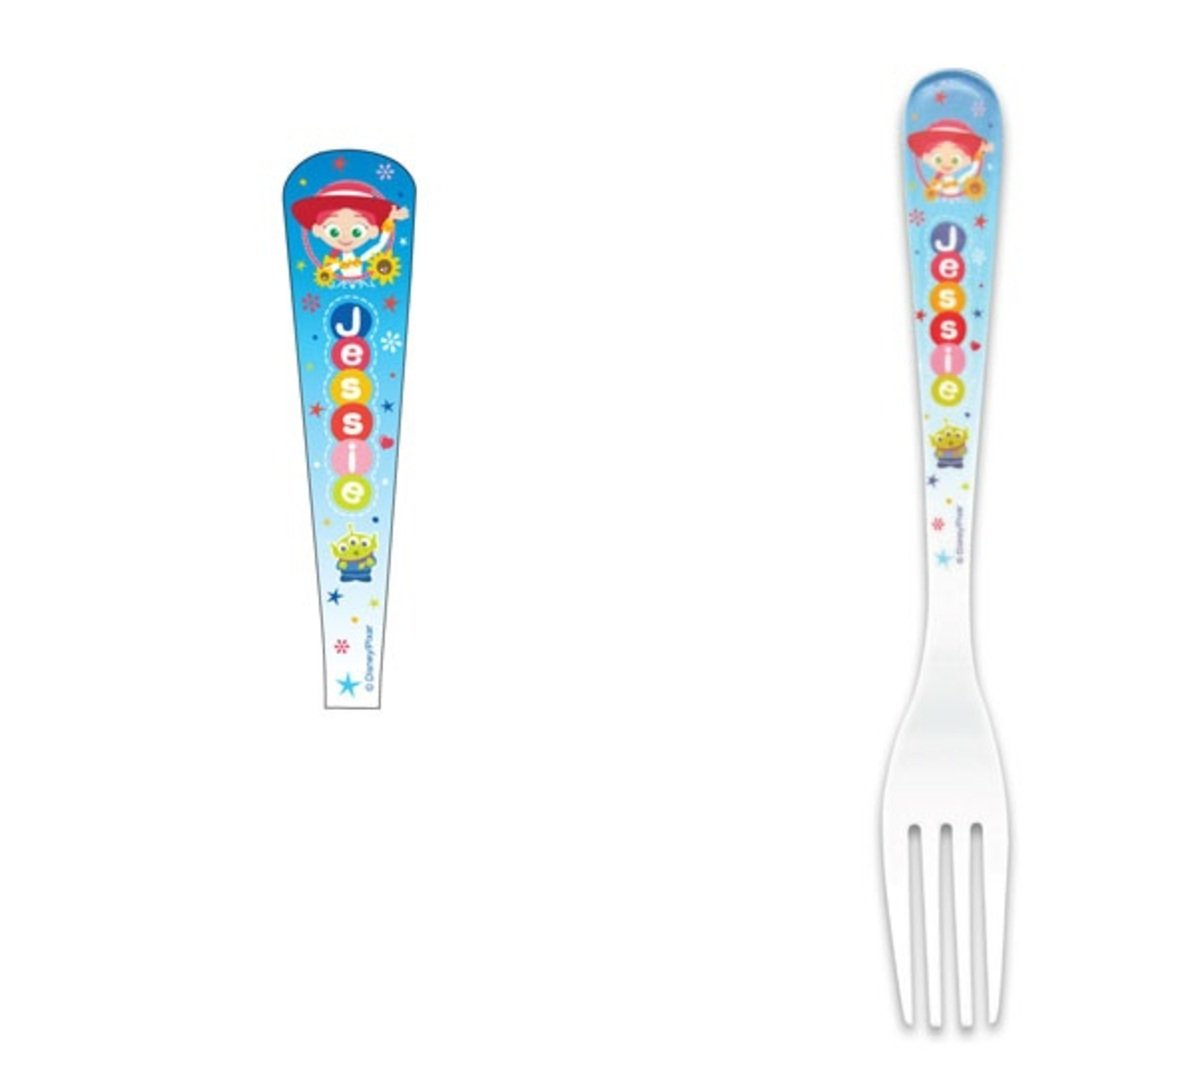 Disney-Melamine 19cm baby fork (Licensed by Disney)